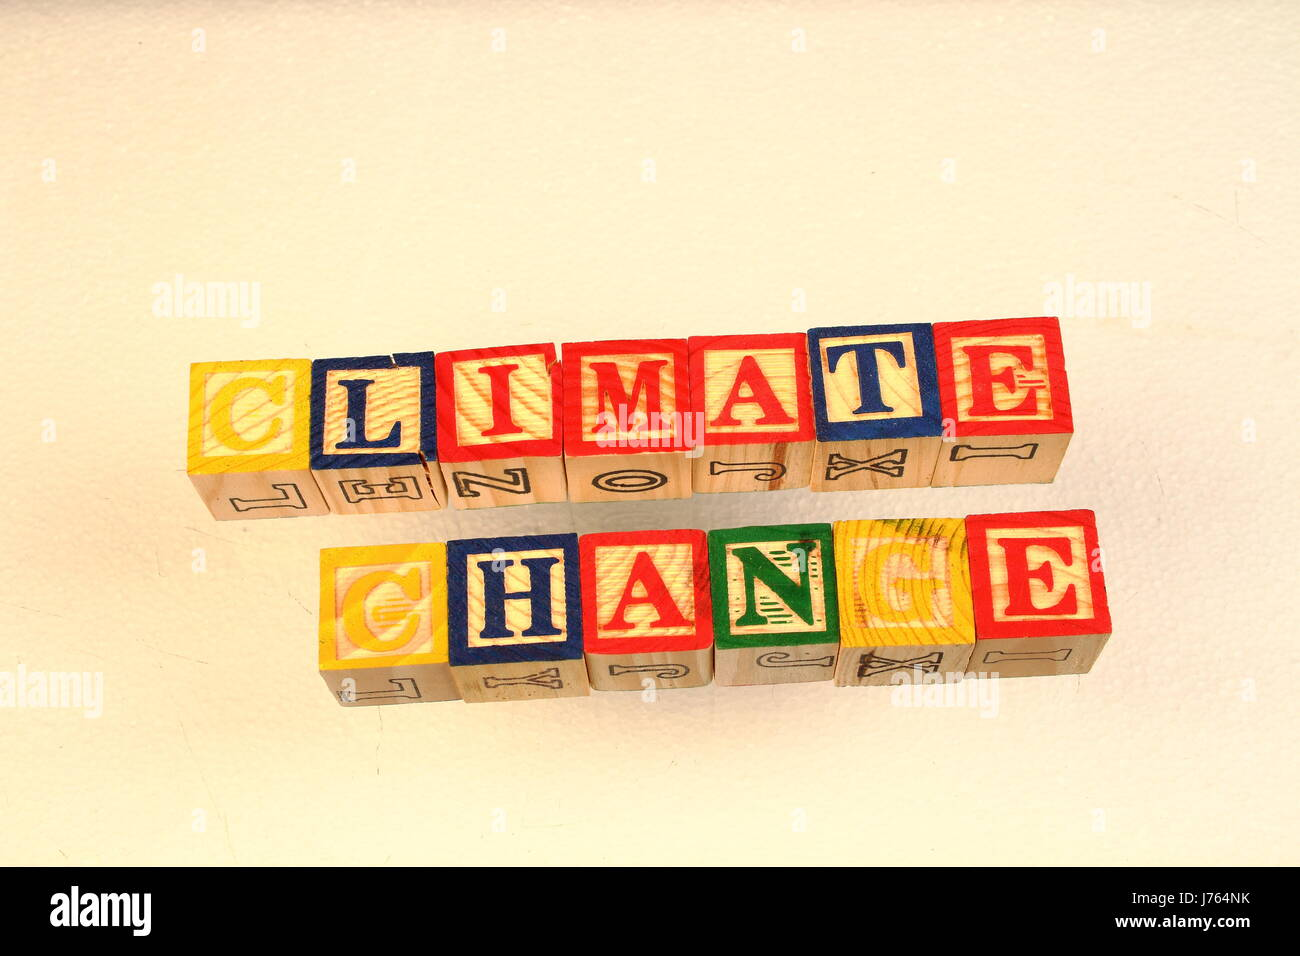 The term climate change visually displayed using colorful wooden toy blocks Stock Photo